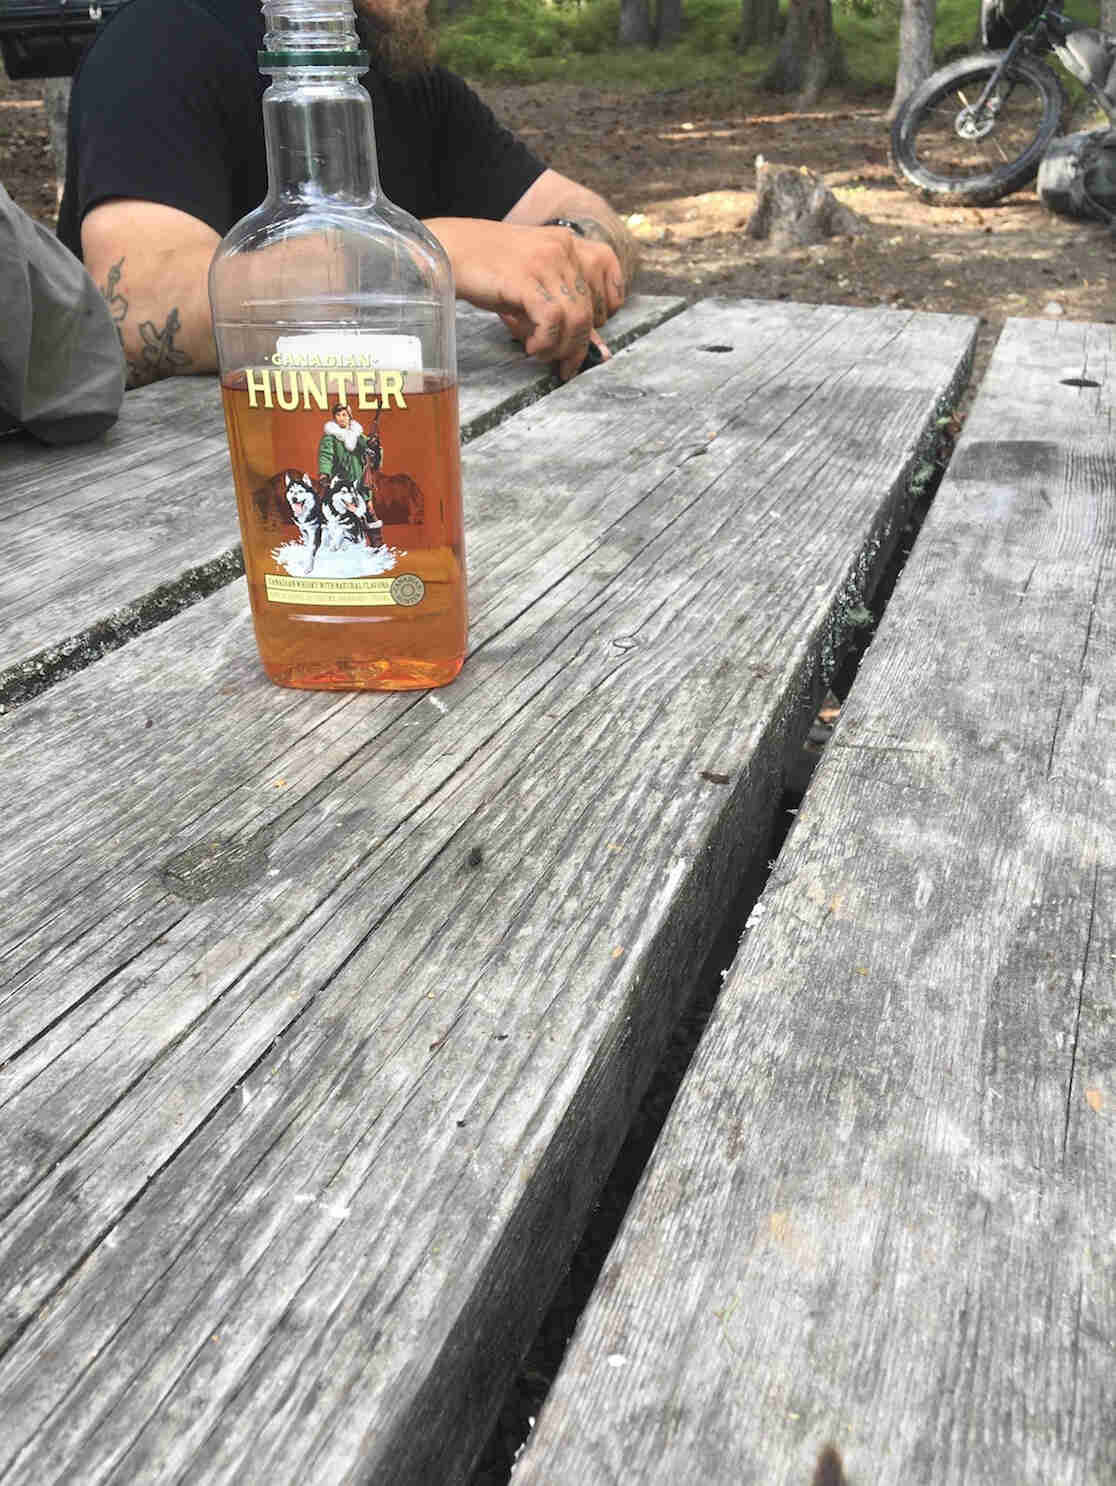 A bottle of Hunter liquors, on a picnic table, with a person sitting at the left end